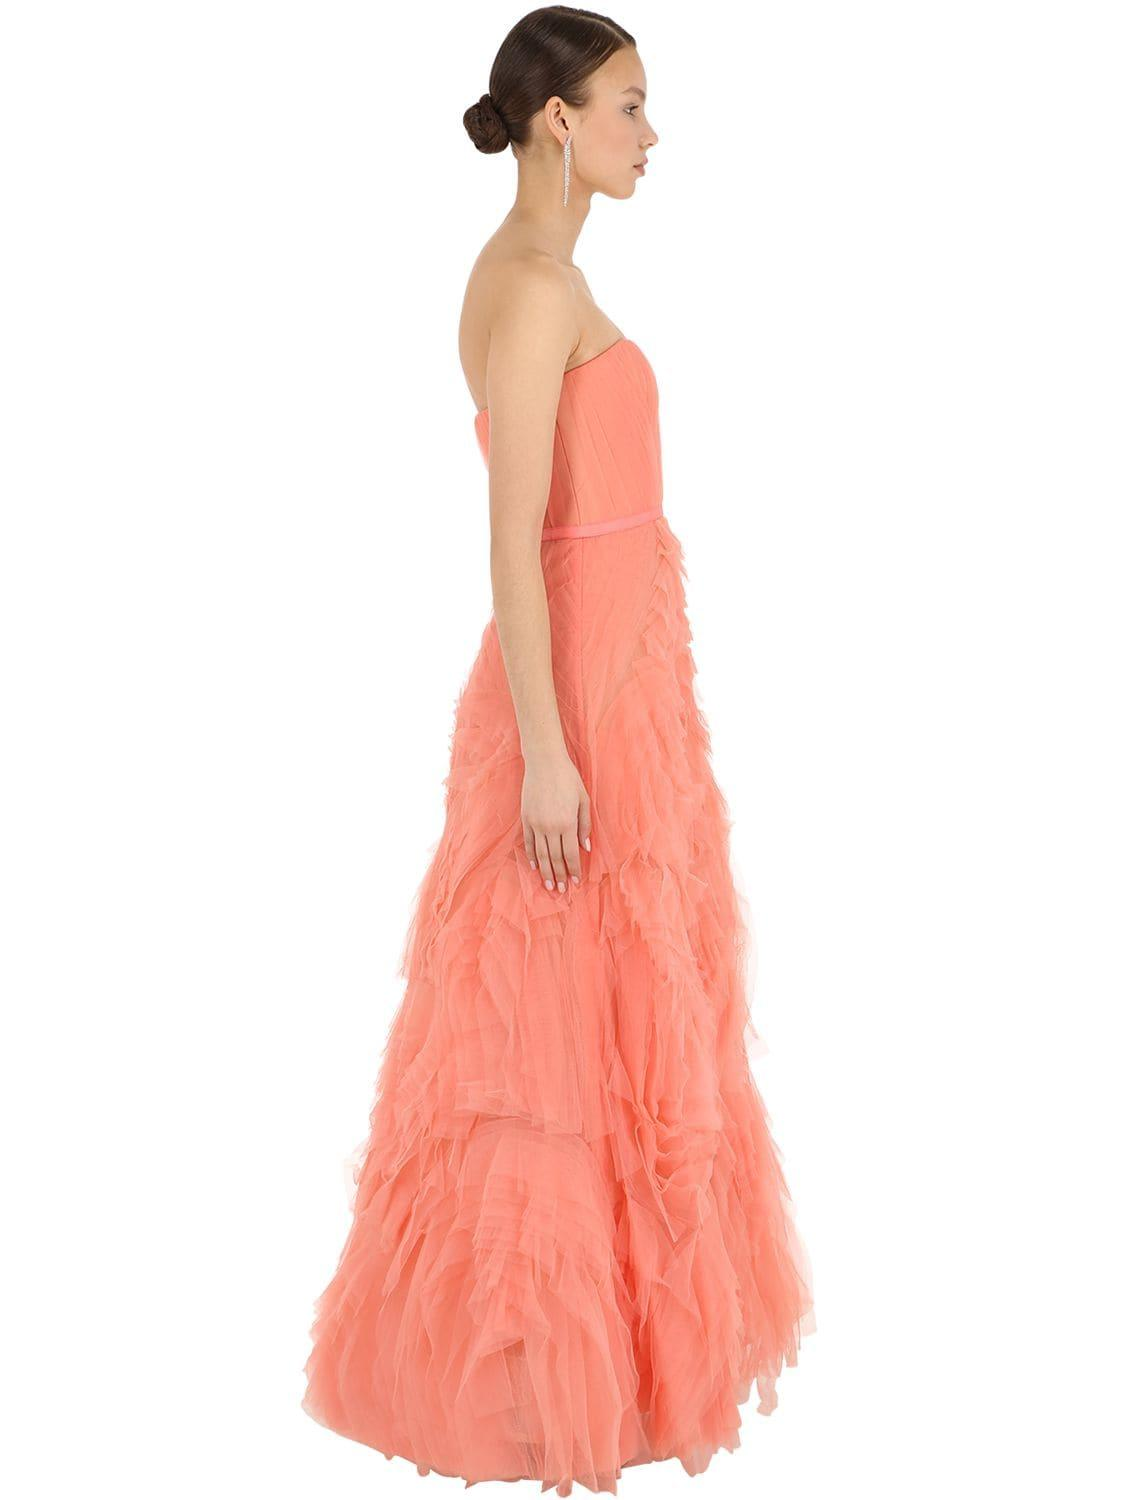 f5cc1f46 Marchesa notte - Pink Long Textured Tulle Dress - Lyst. View fullscreen